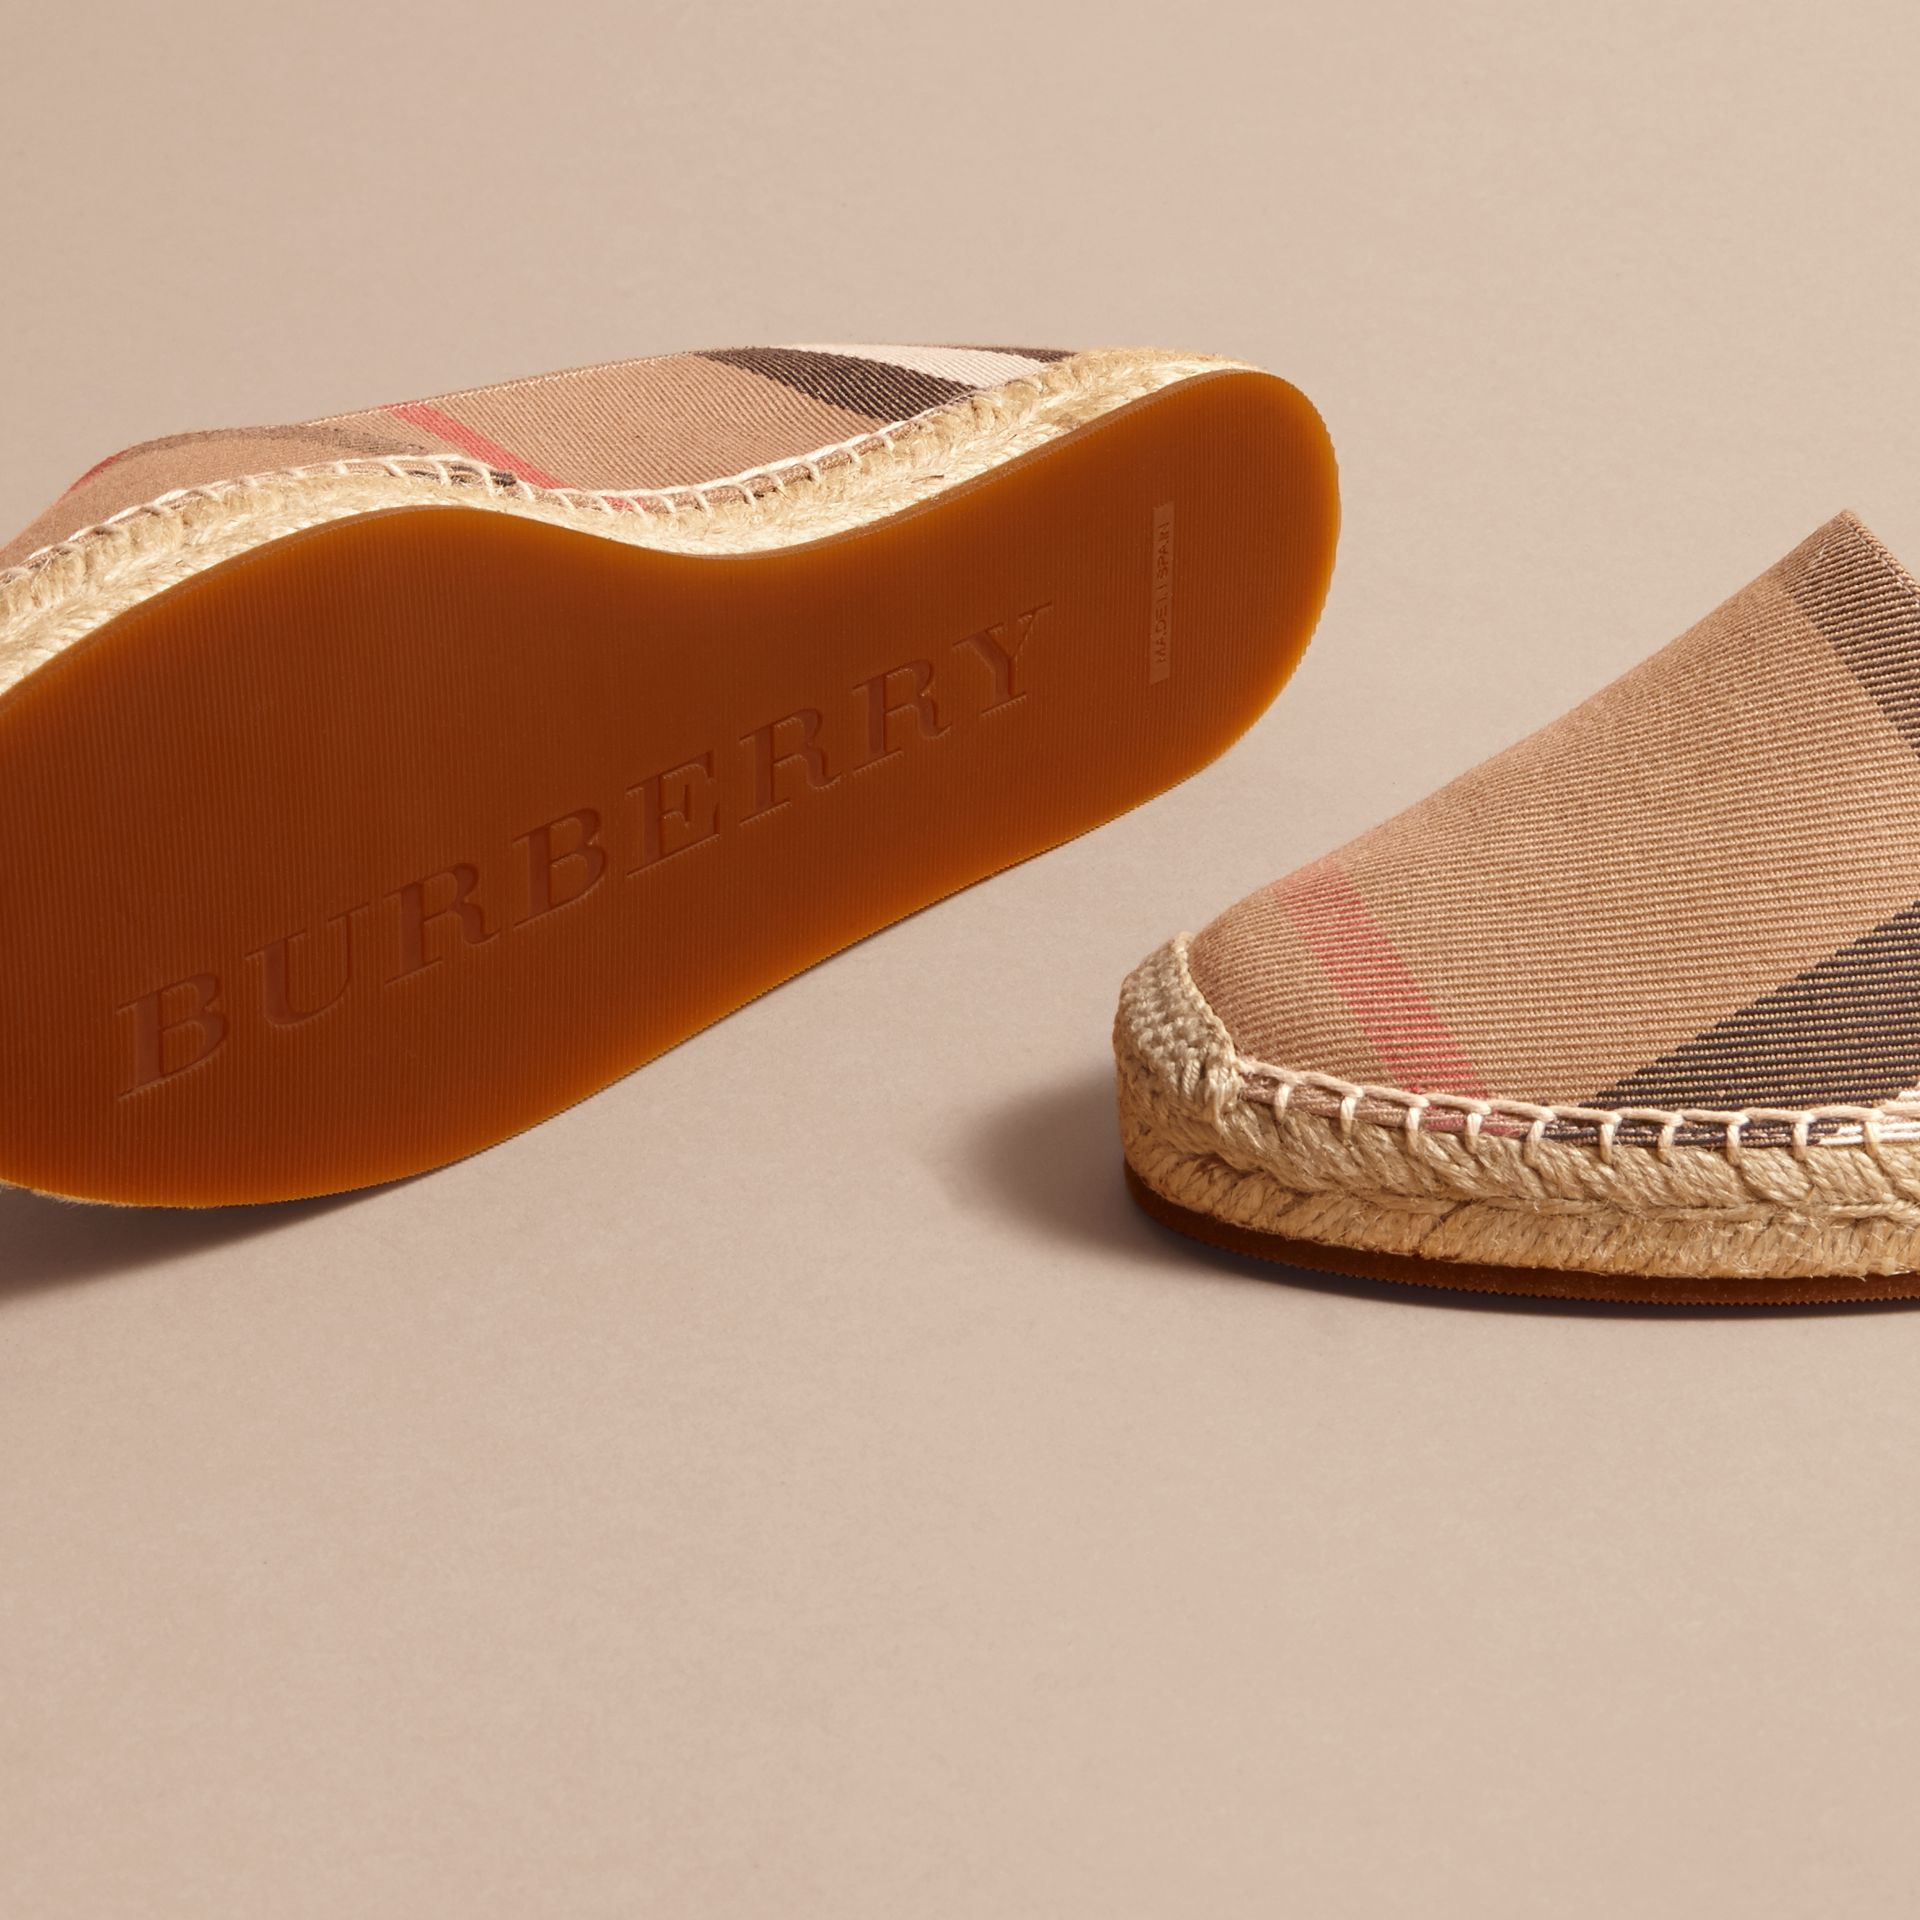 Leather Trim Canvas Check Espadrilles in Classic - Women | Burberry - gallery image 4